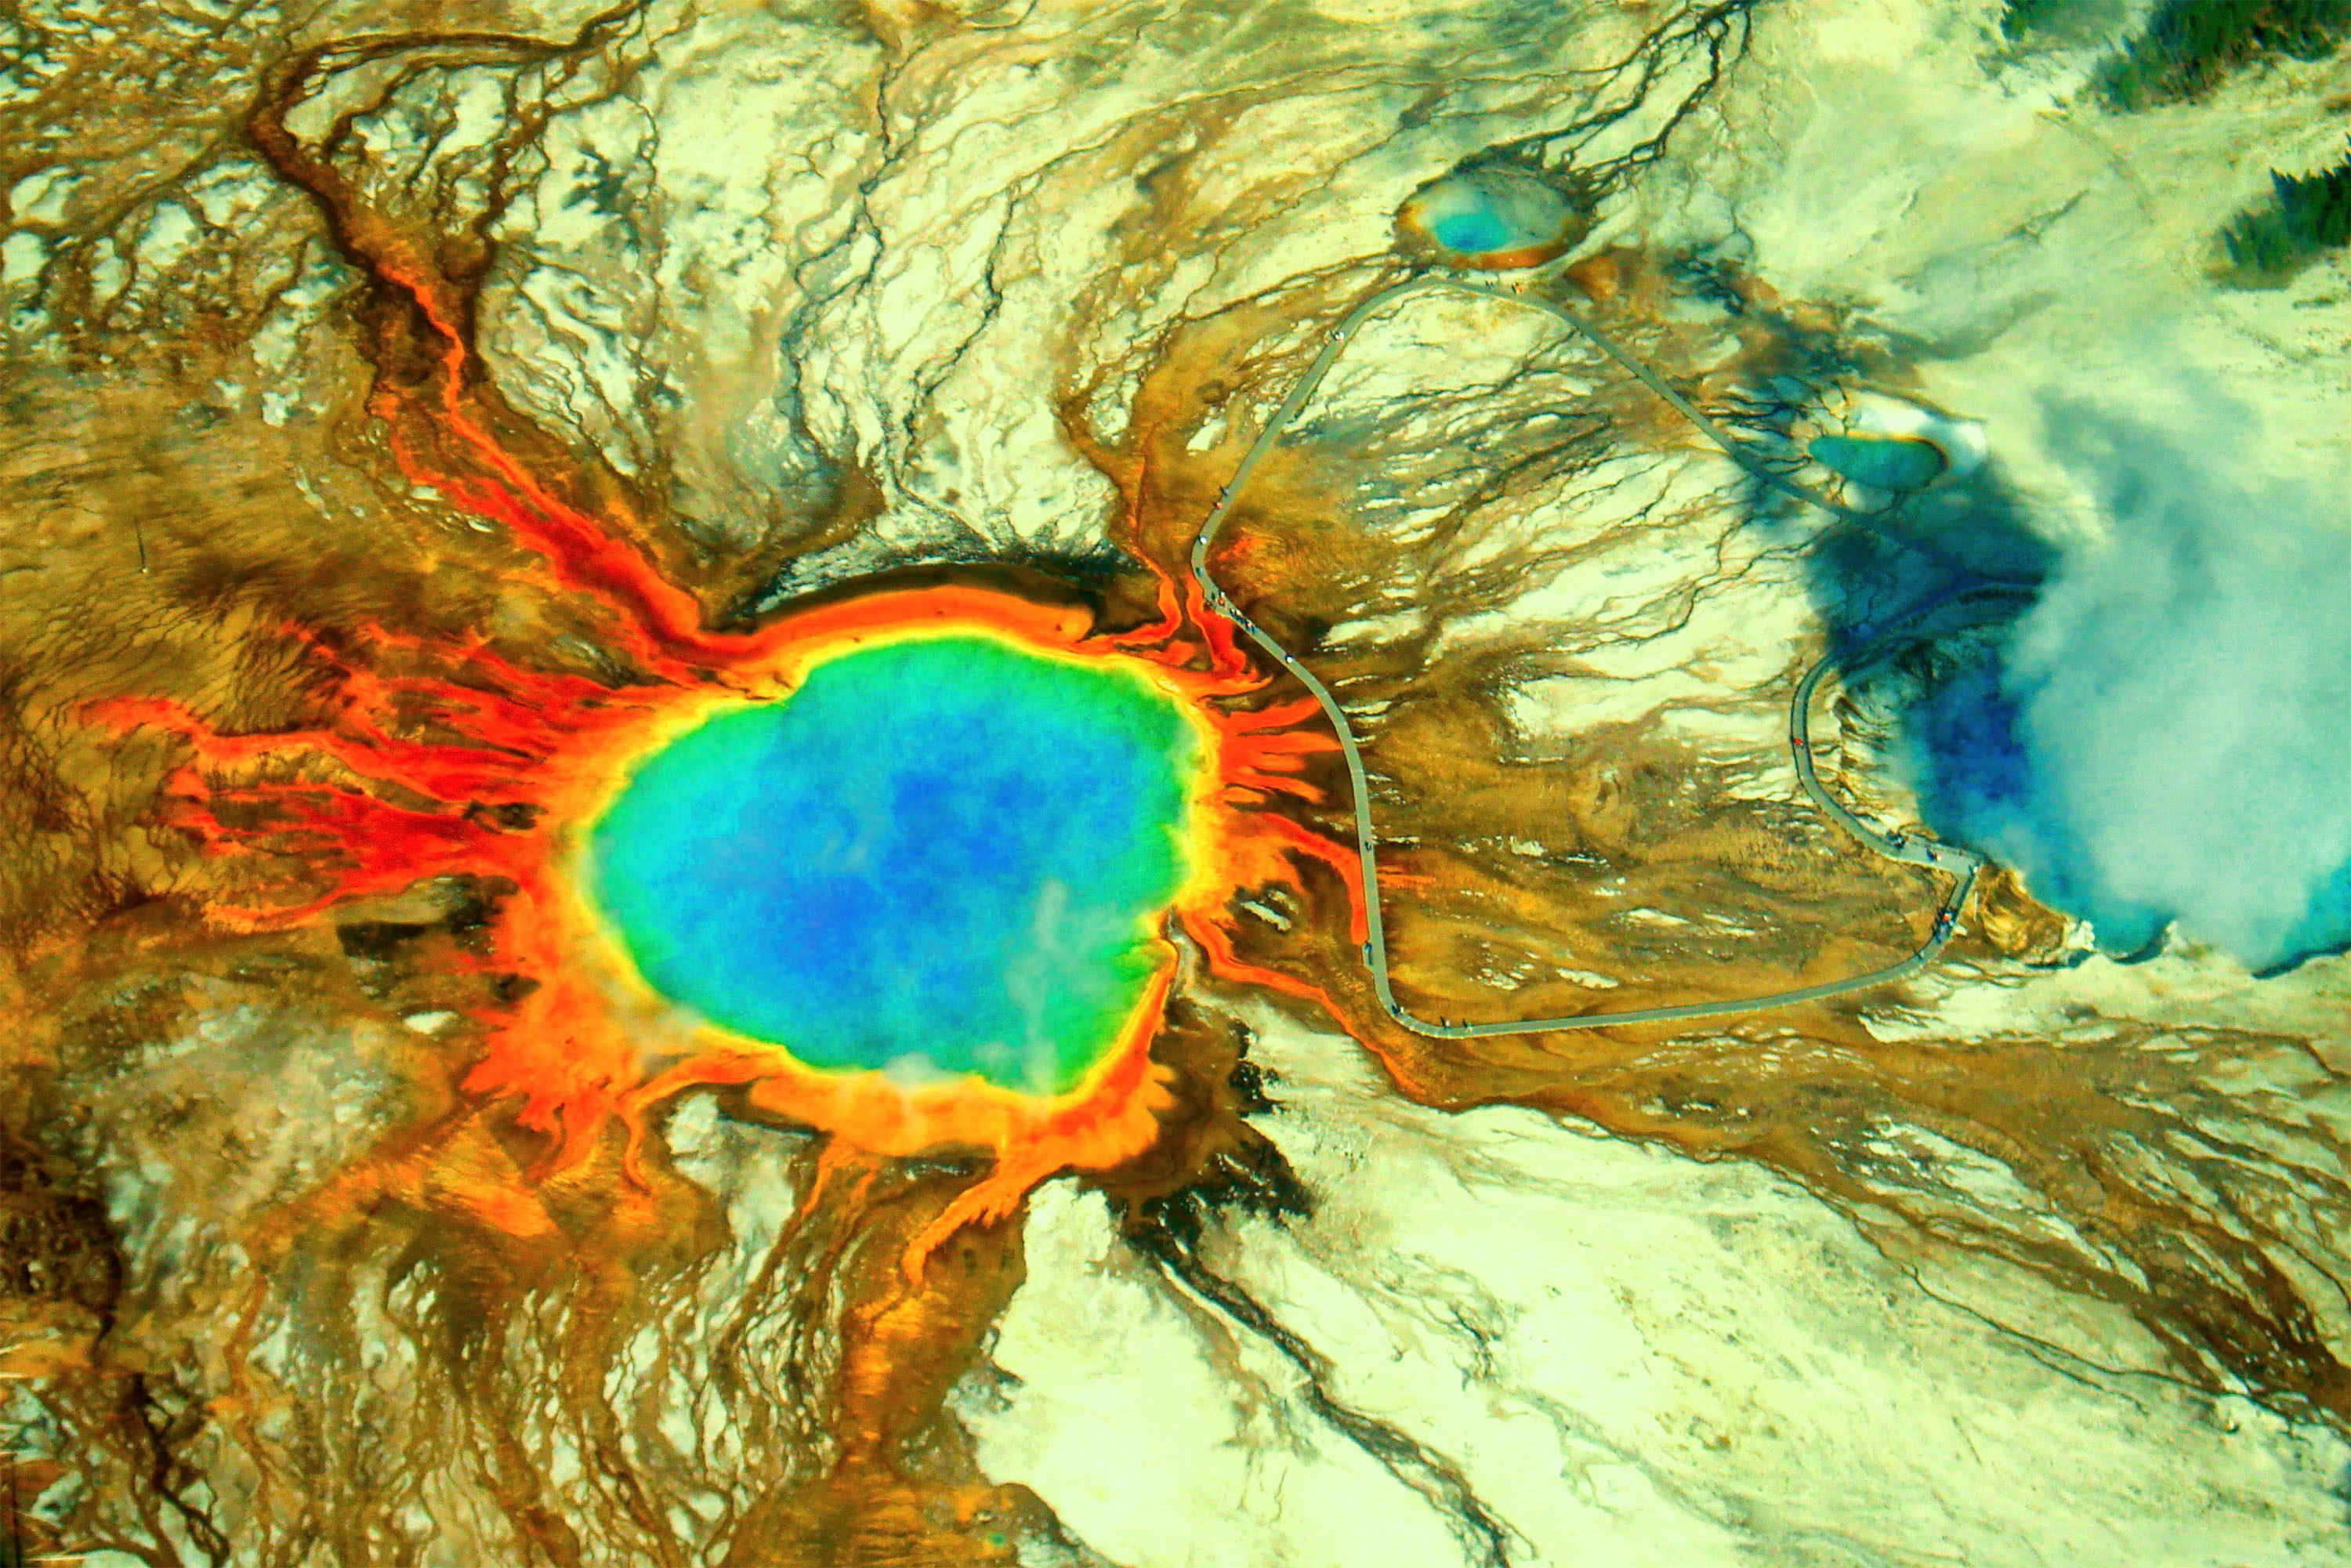 New details have emerged surrounding NASA's plan to cool down the Yellowstone supervolcano to prevent a catastrophic eruption.